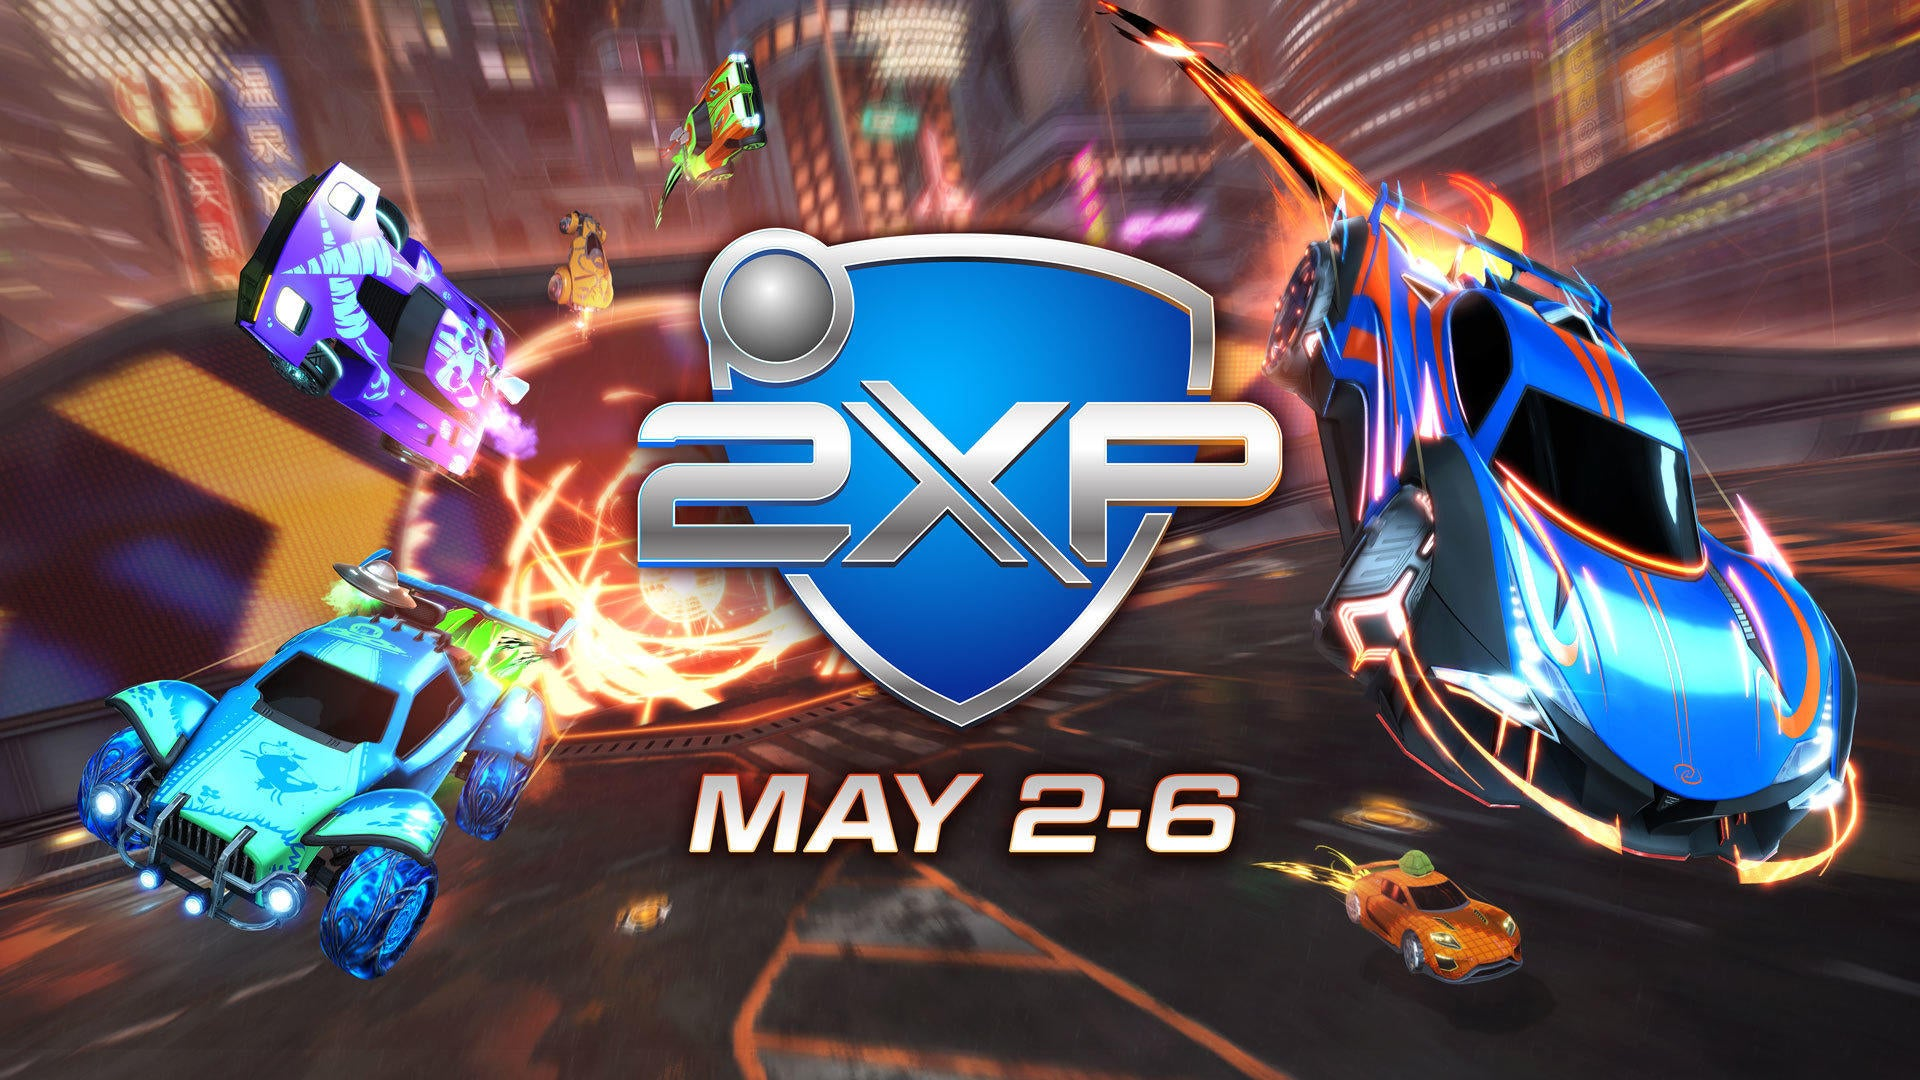 2XP Weekend starts May 2 Image